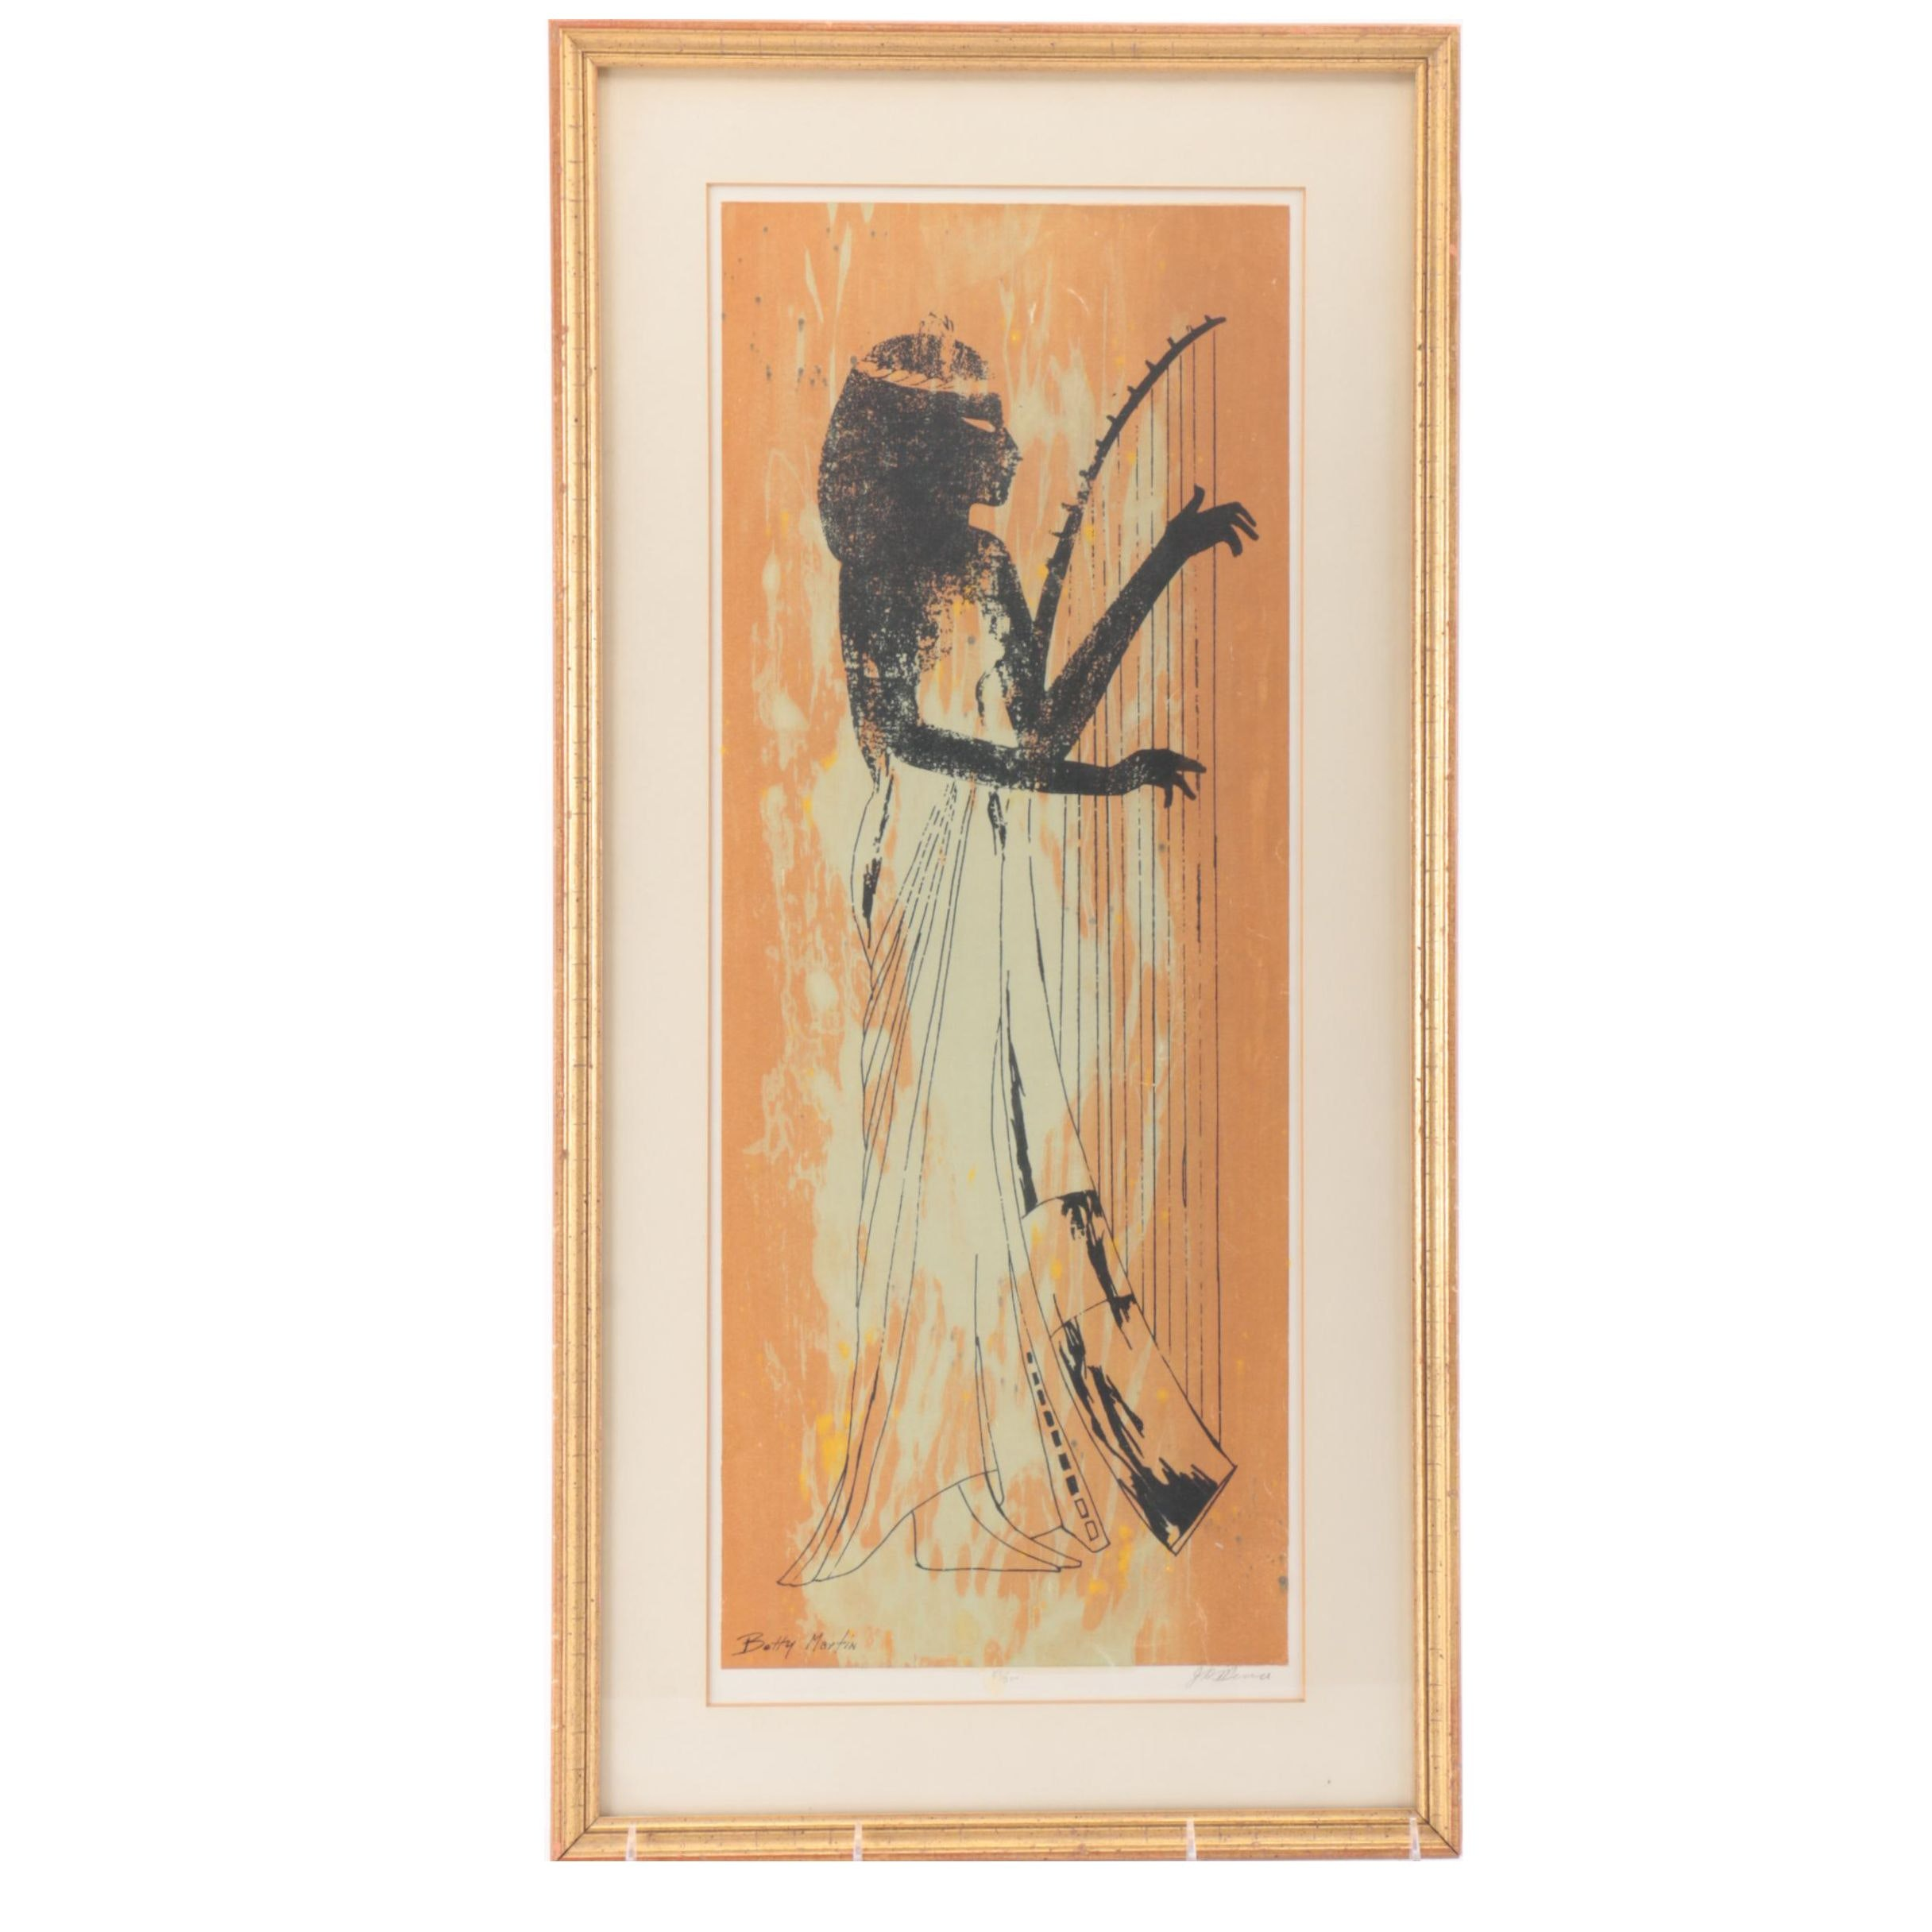 Betty Martin Limited Edition Serigraph on Paper of Egyptian Harpist